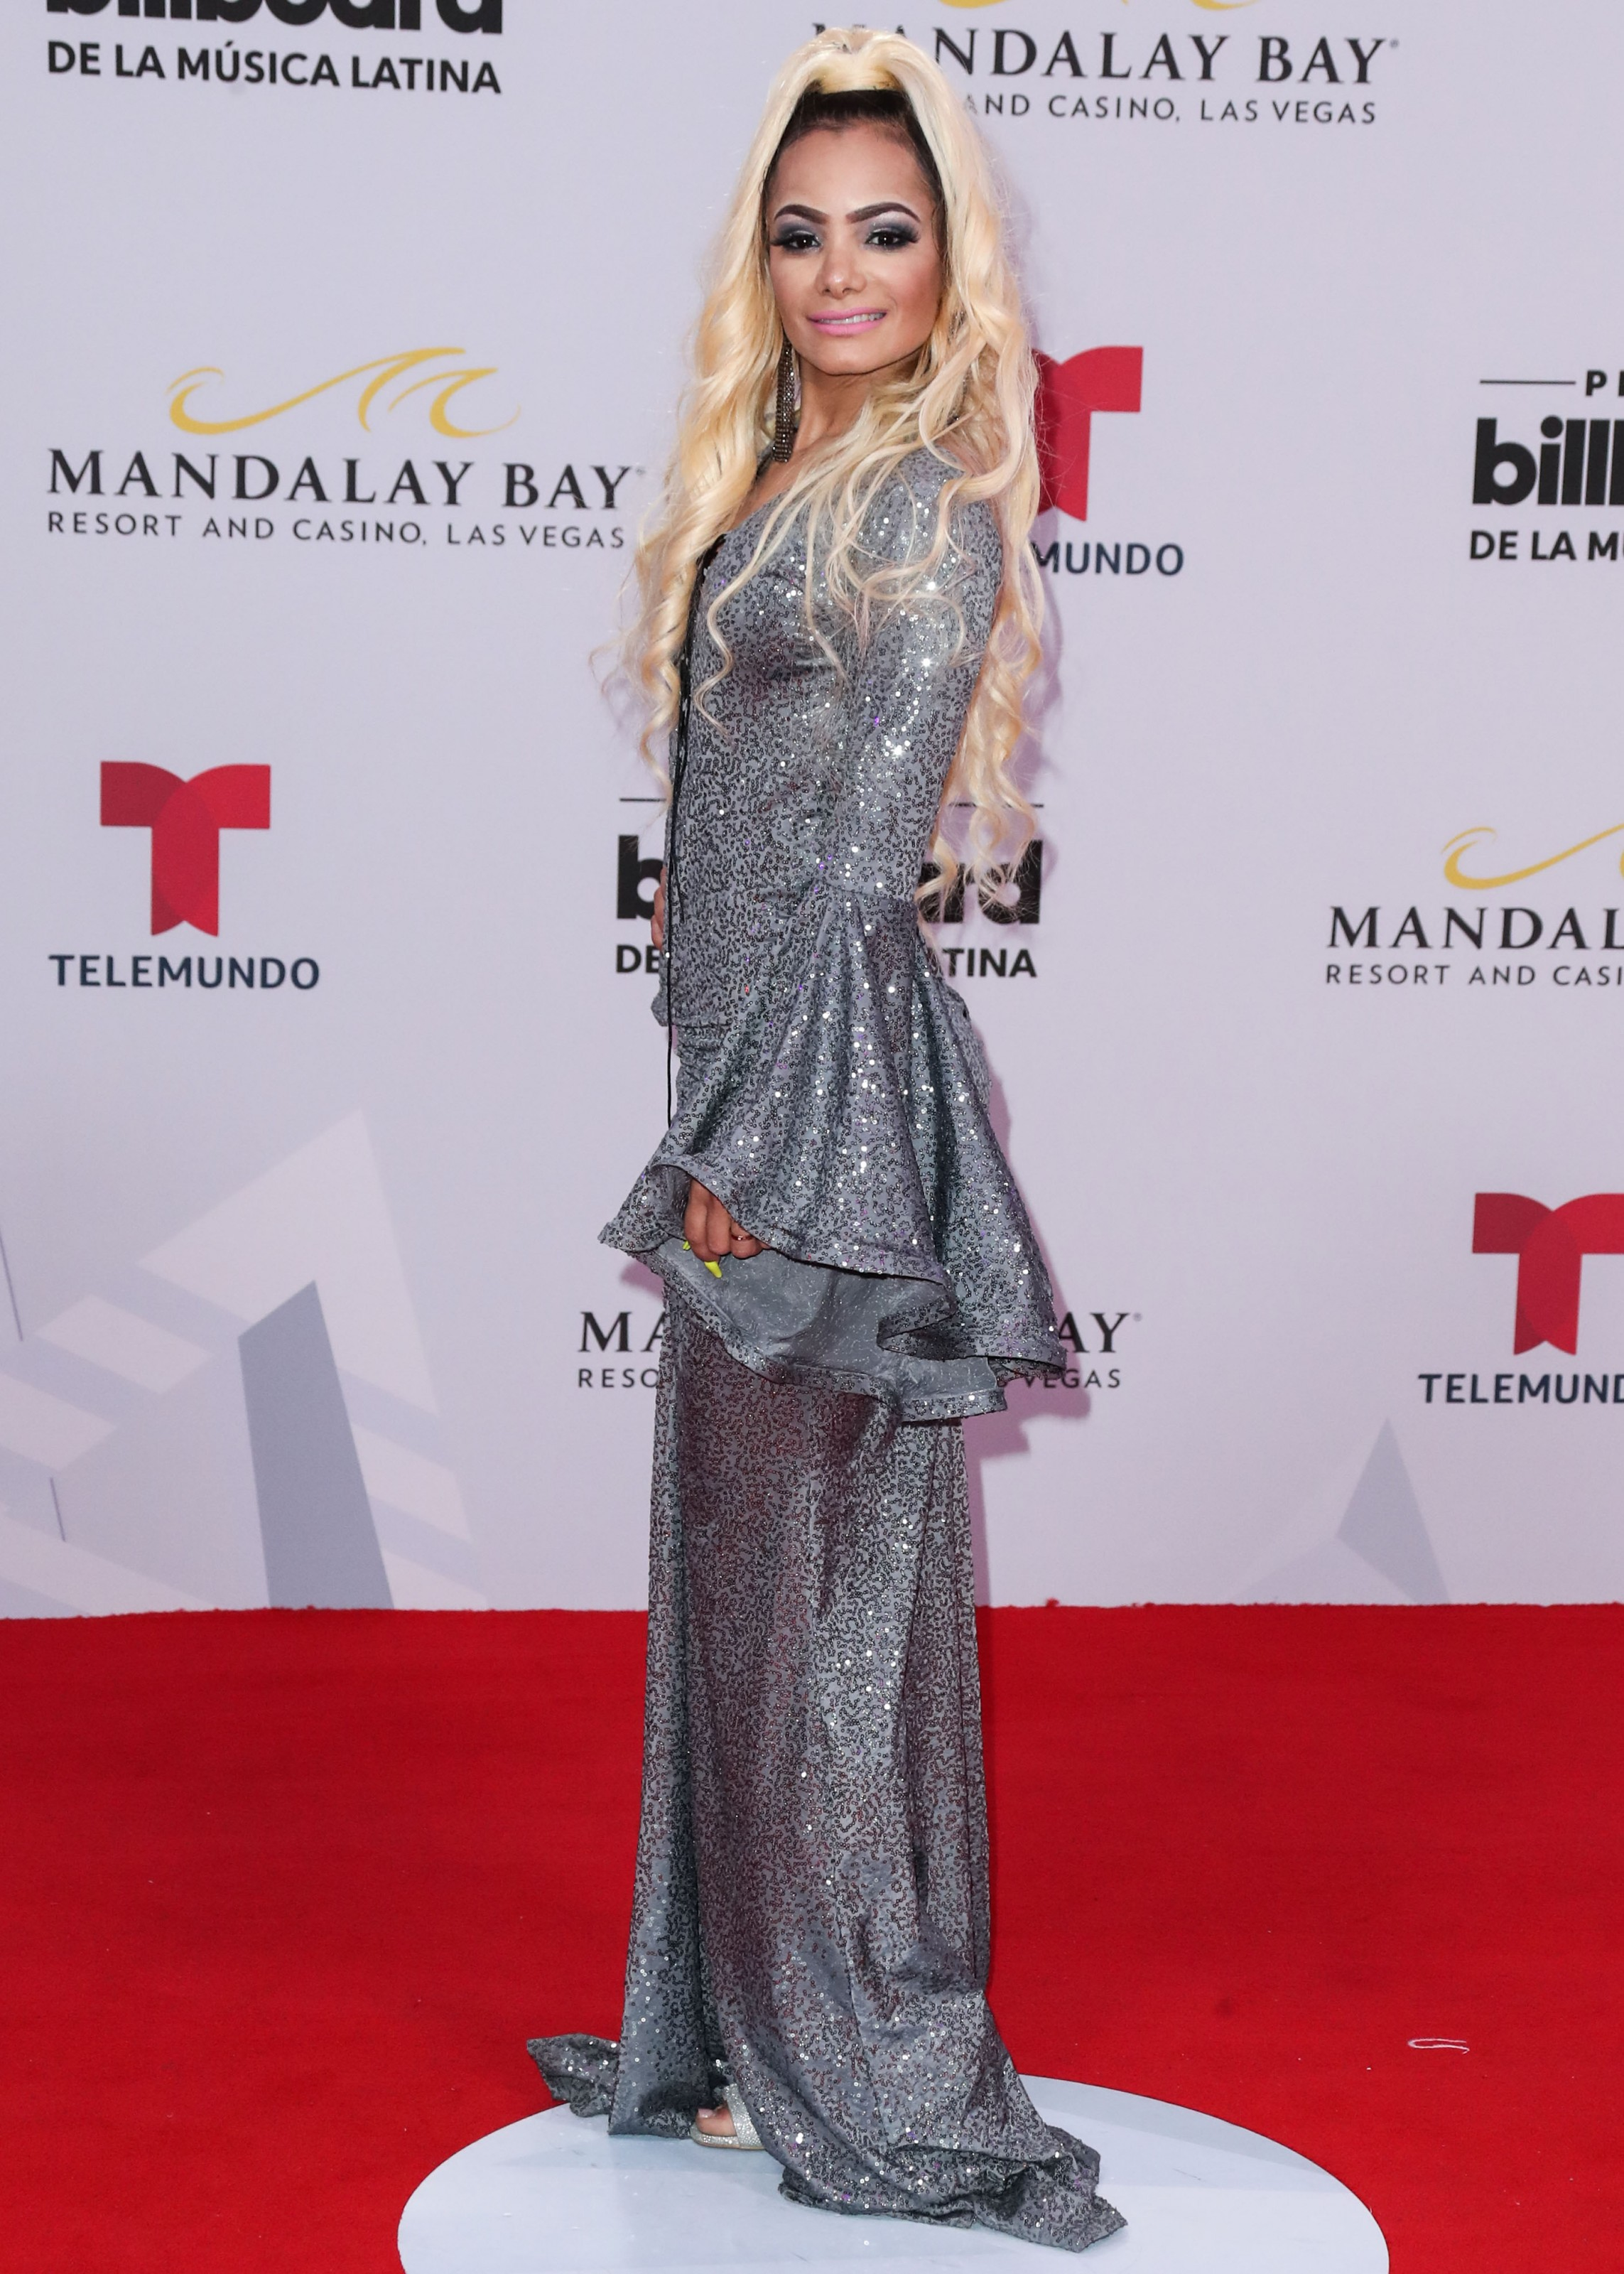 2019 Billboard Latin Music Awards held at the Mandalay Bay Events Center on April 25, 2019 in Las Vegas, Nevada, United States.25 Apr 2019Pictured: Lady Janny.Photo credit: Xavier Collin/Image Press Agency / MEGATheMegaAgency.com+1 888 505 6342